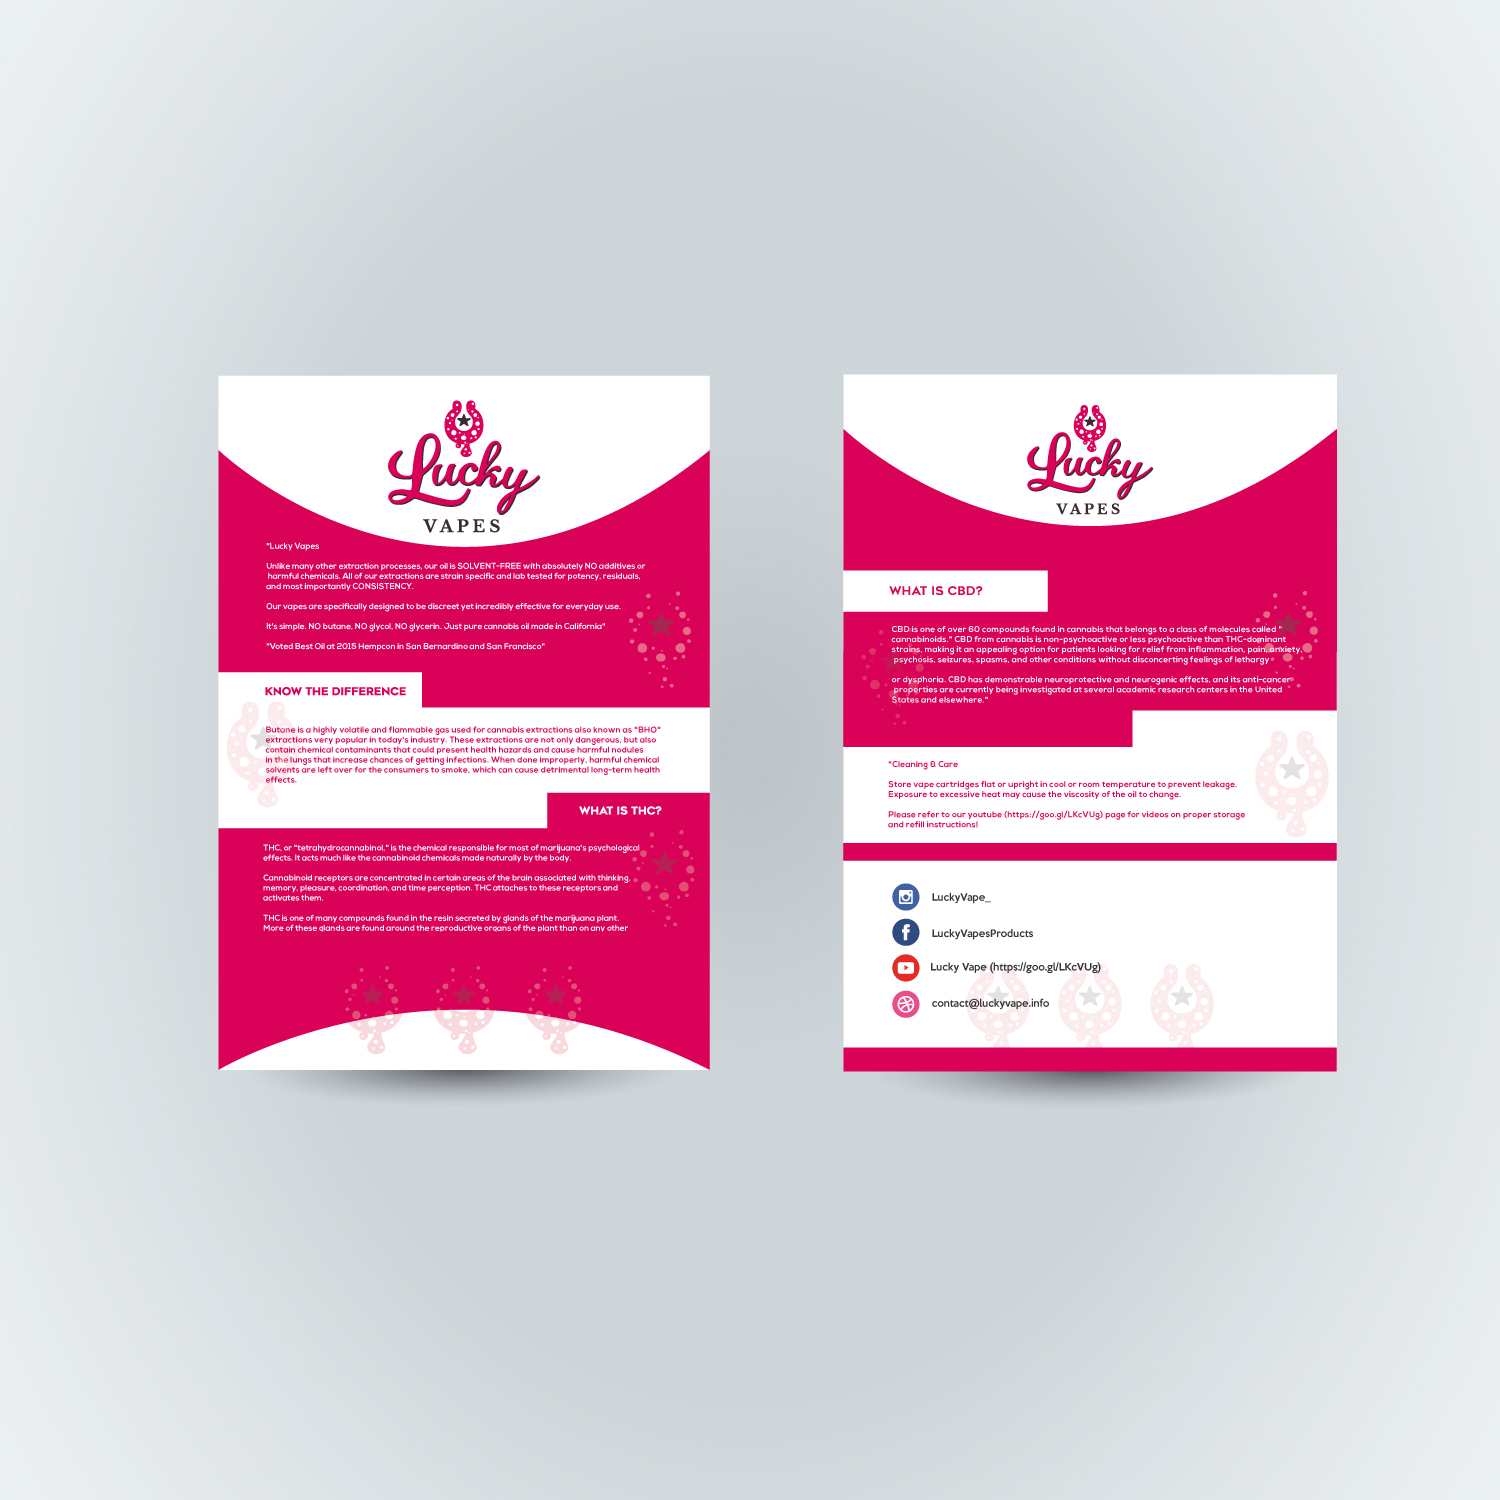 It Company Flyer Design for Lucky Products by fatih7